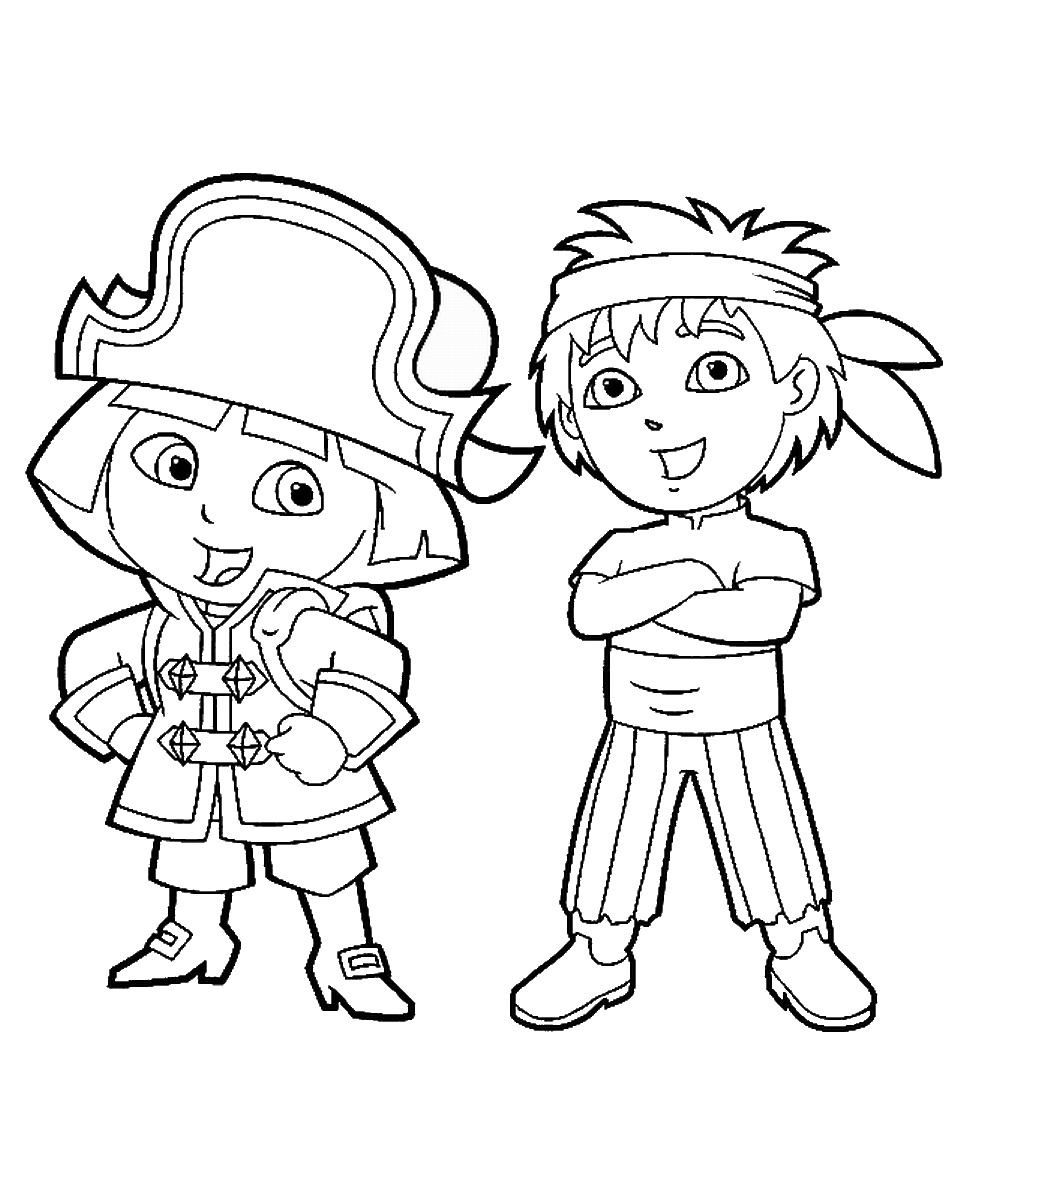 dora coloring pictures dora coloring pages dora coloring pages coloring pictures dora